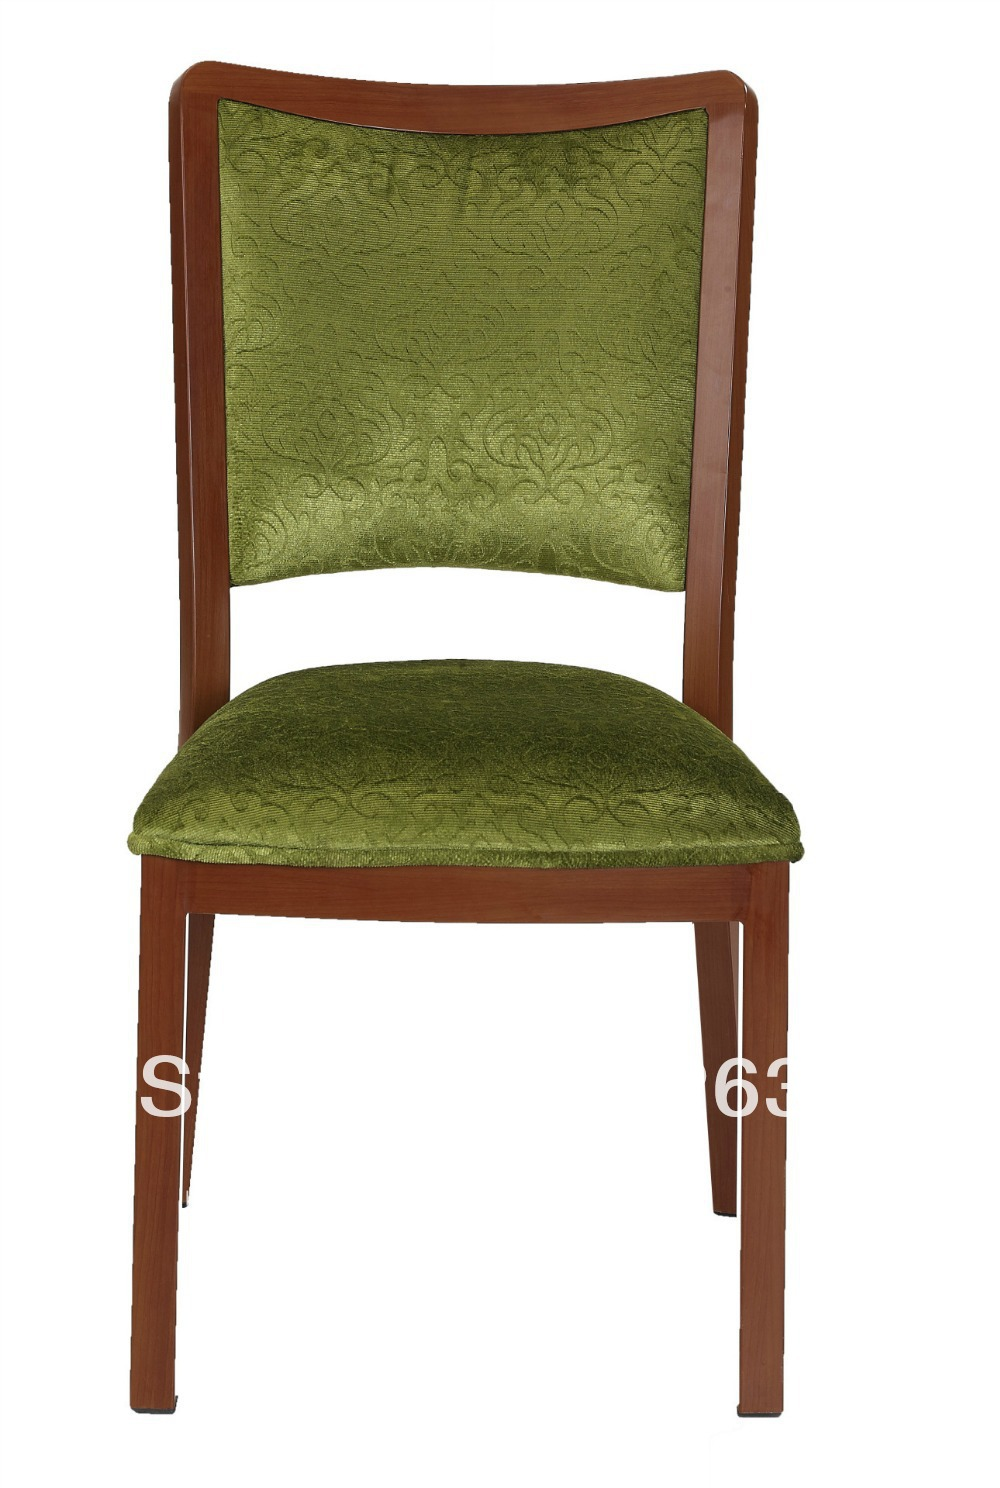 Stackable Wood Grain Aluminum Banquet Chair Heavy Duty Fabric With High Rub Resistance